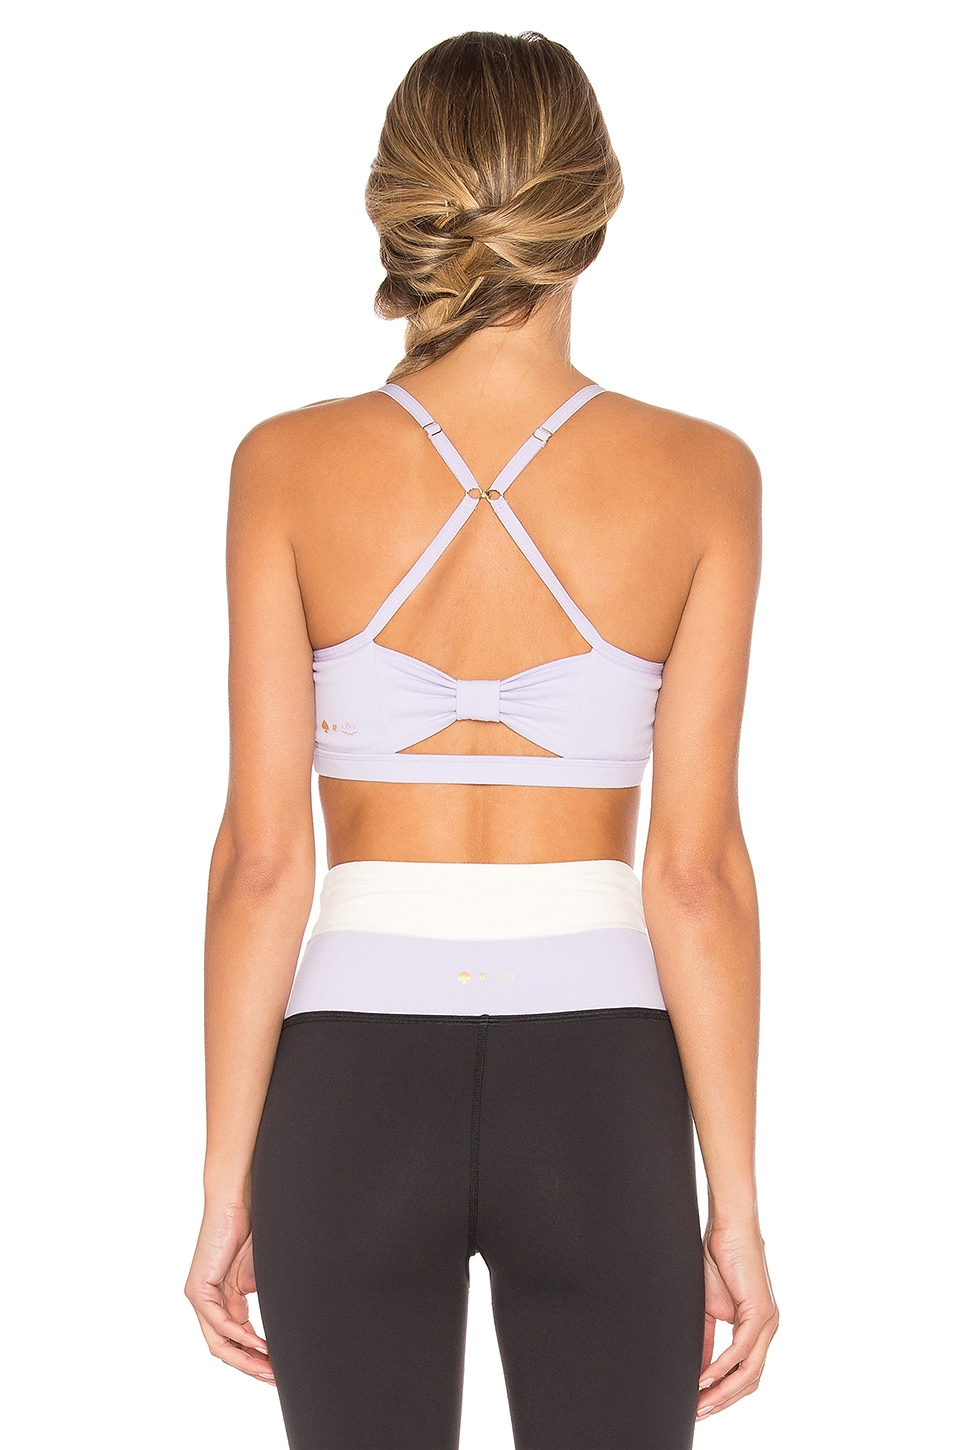 BEYOND YOGA X KATE SPADE CINCHED BOW BRA